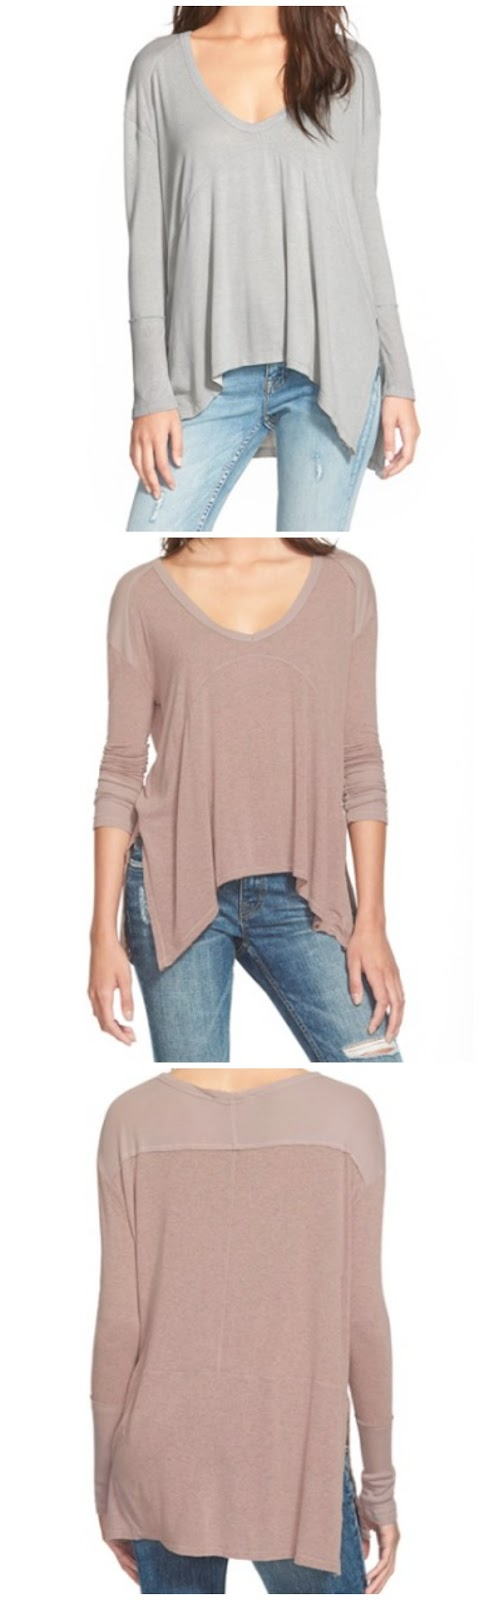 Fall/Winter fashion - Elodie Ribbed Long Sleeve Tee